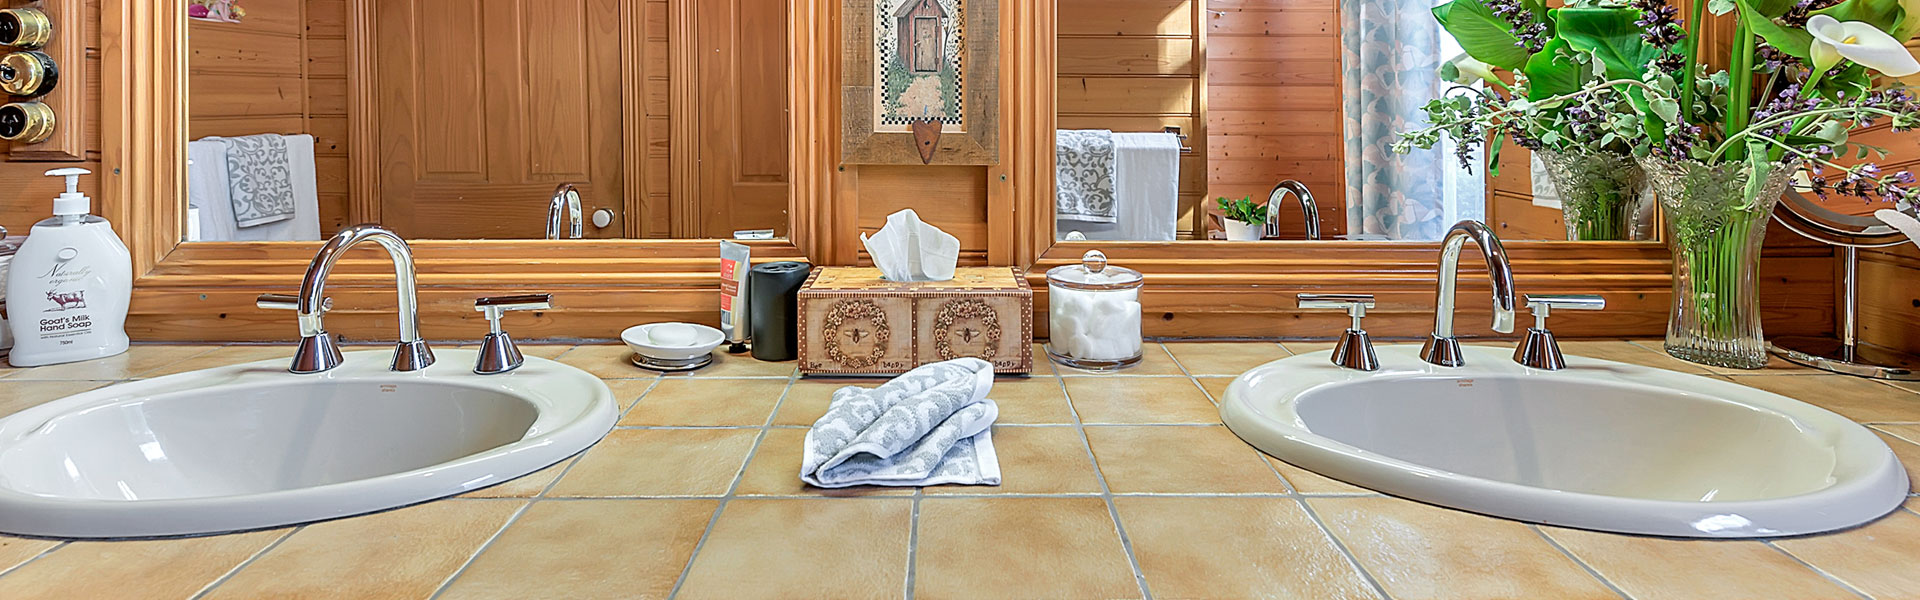 Stony-Rise-Cottage-main-house-guest-bathroom